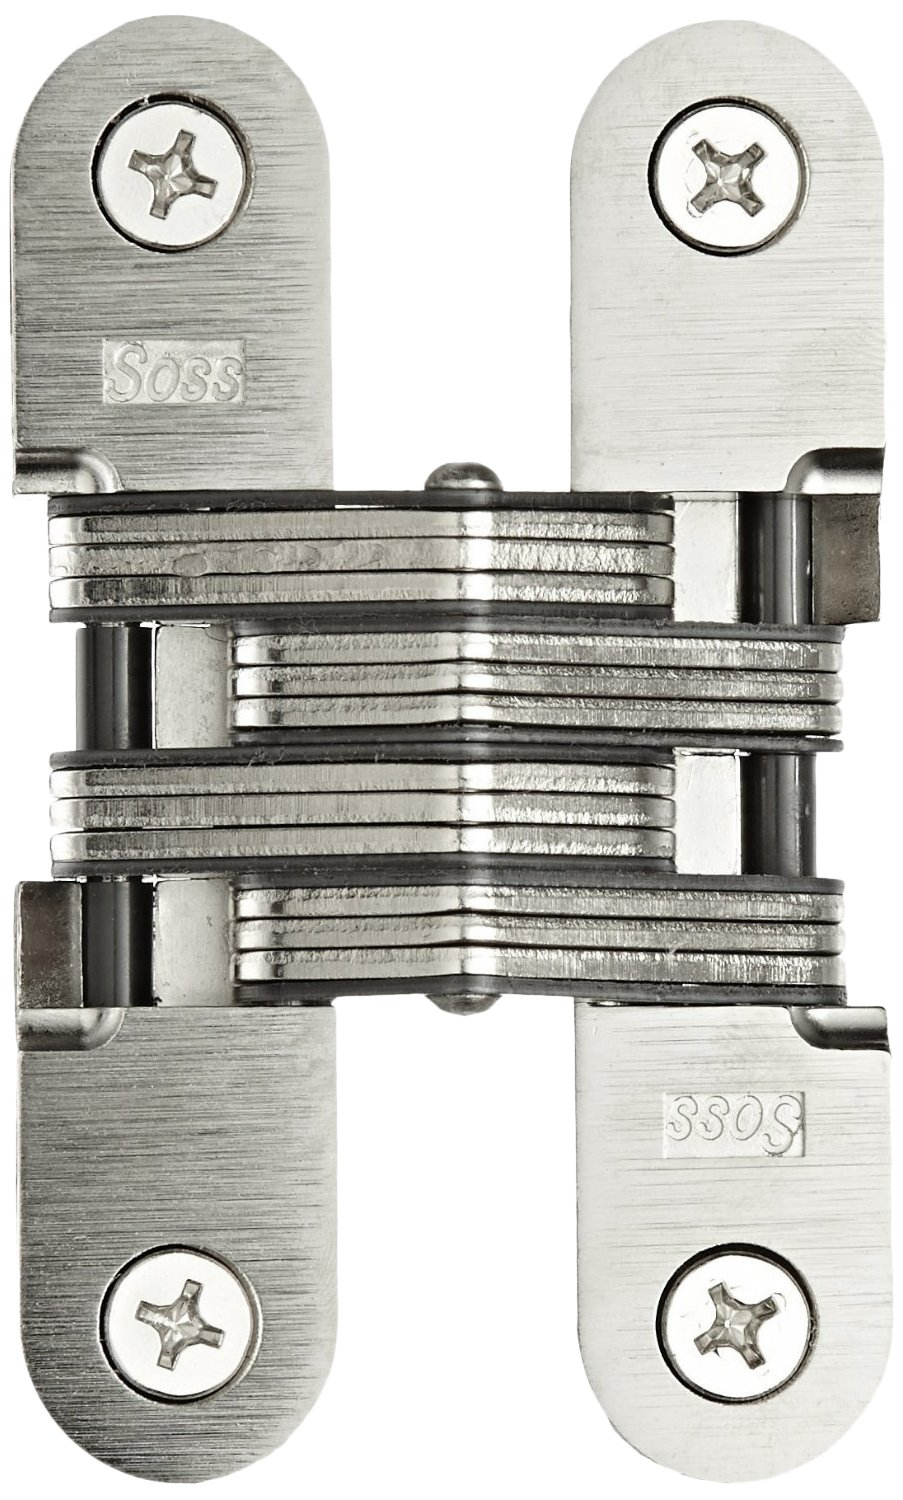 SOSS Mortise Mount Invisible Hinge with 4 Holes, Zinc, Satin Chrome Finish, 4-5/8'' Leaf Height, 1'' Leaf Width, 1-7/16'' Leaf Thickness, 14 x 1-1/2'' Screw Size